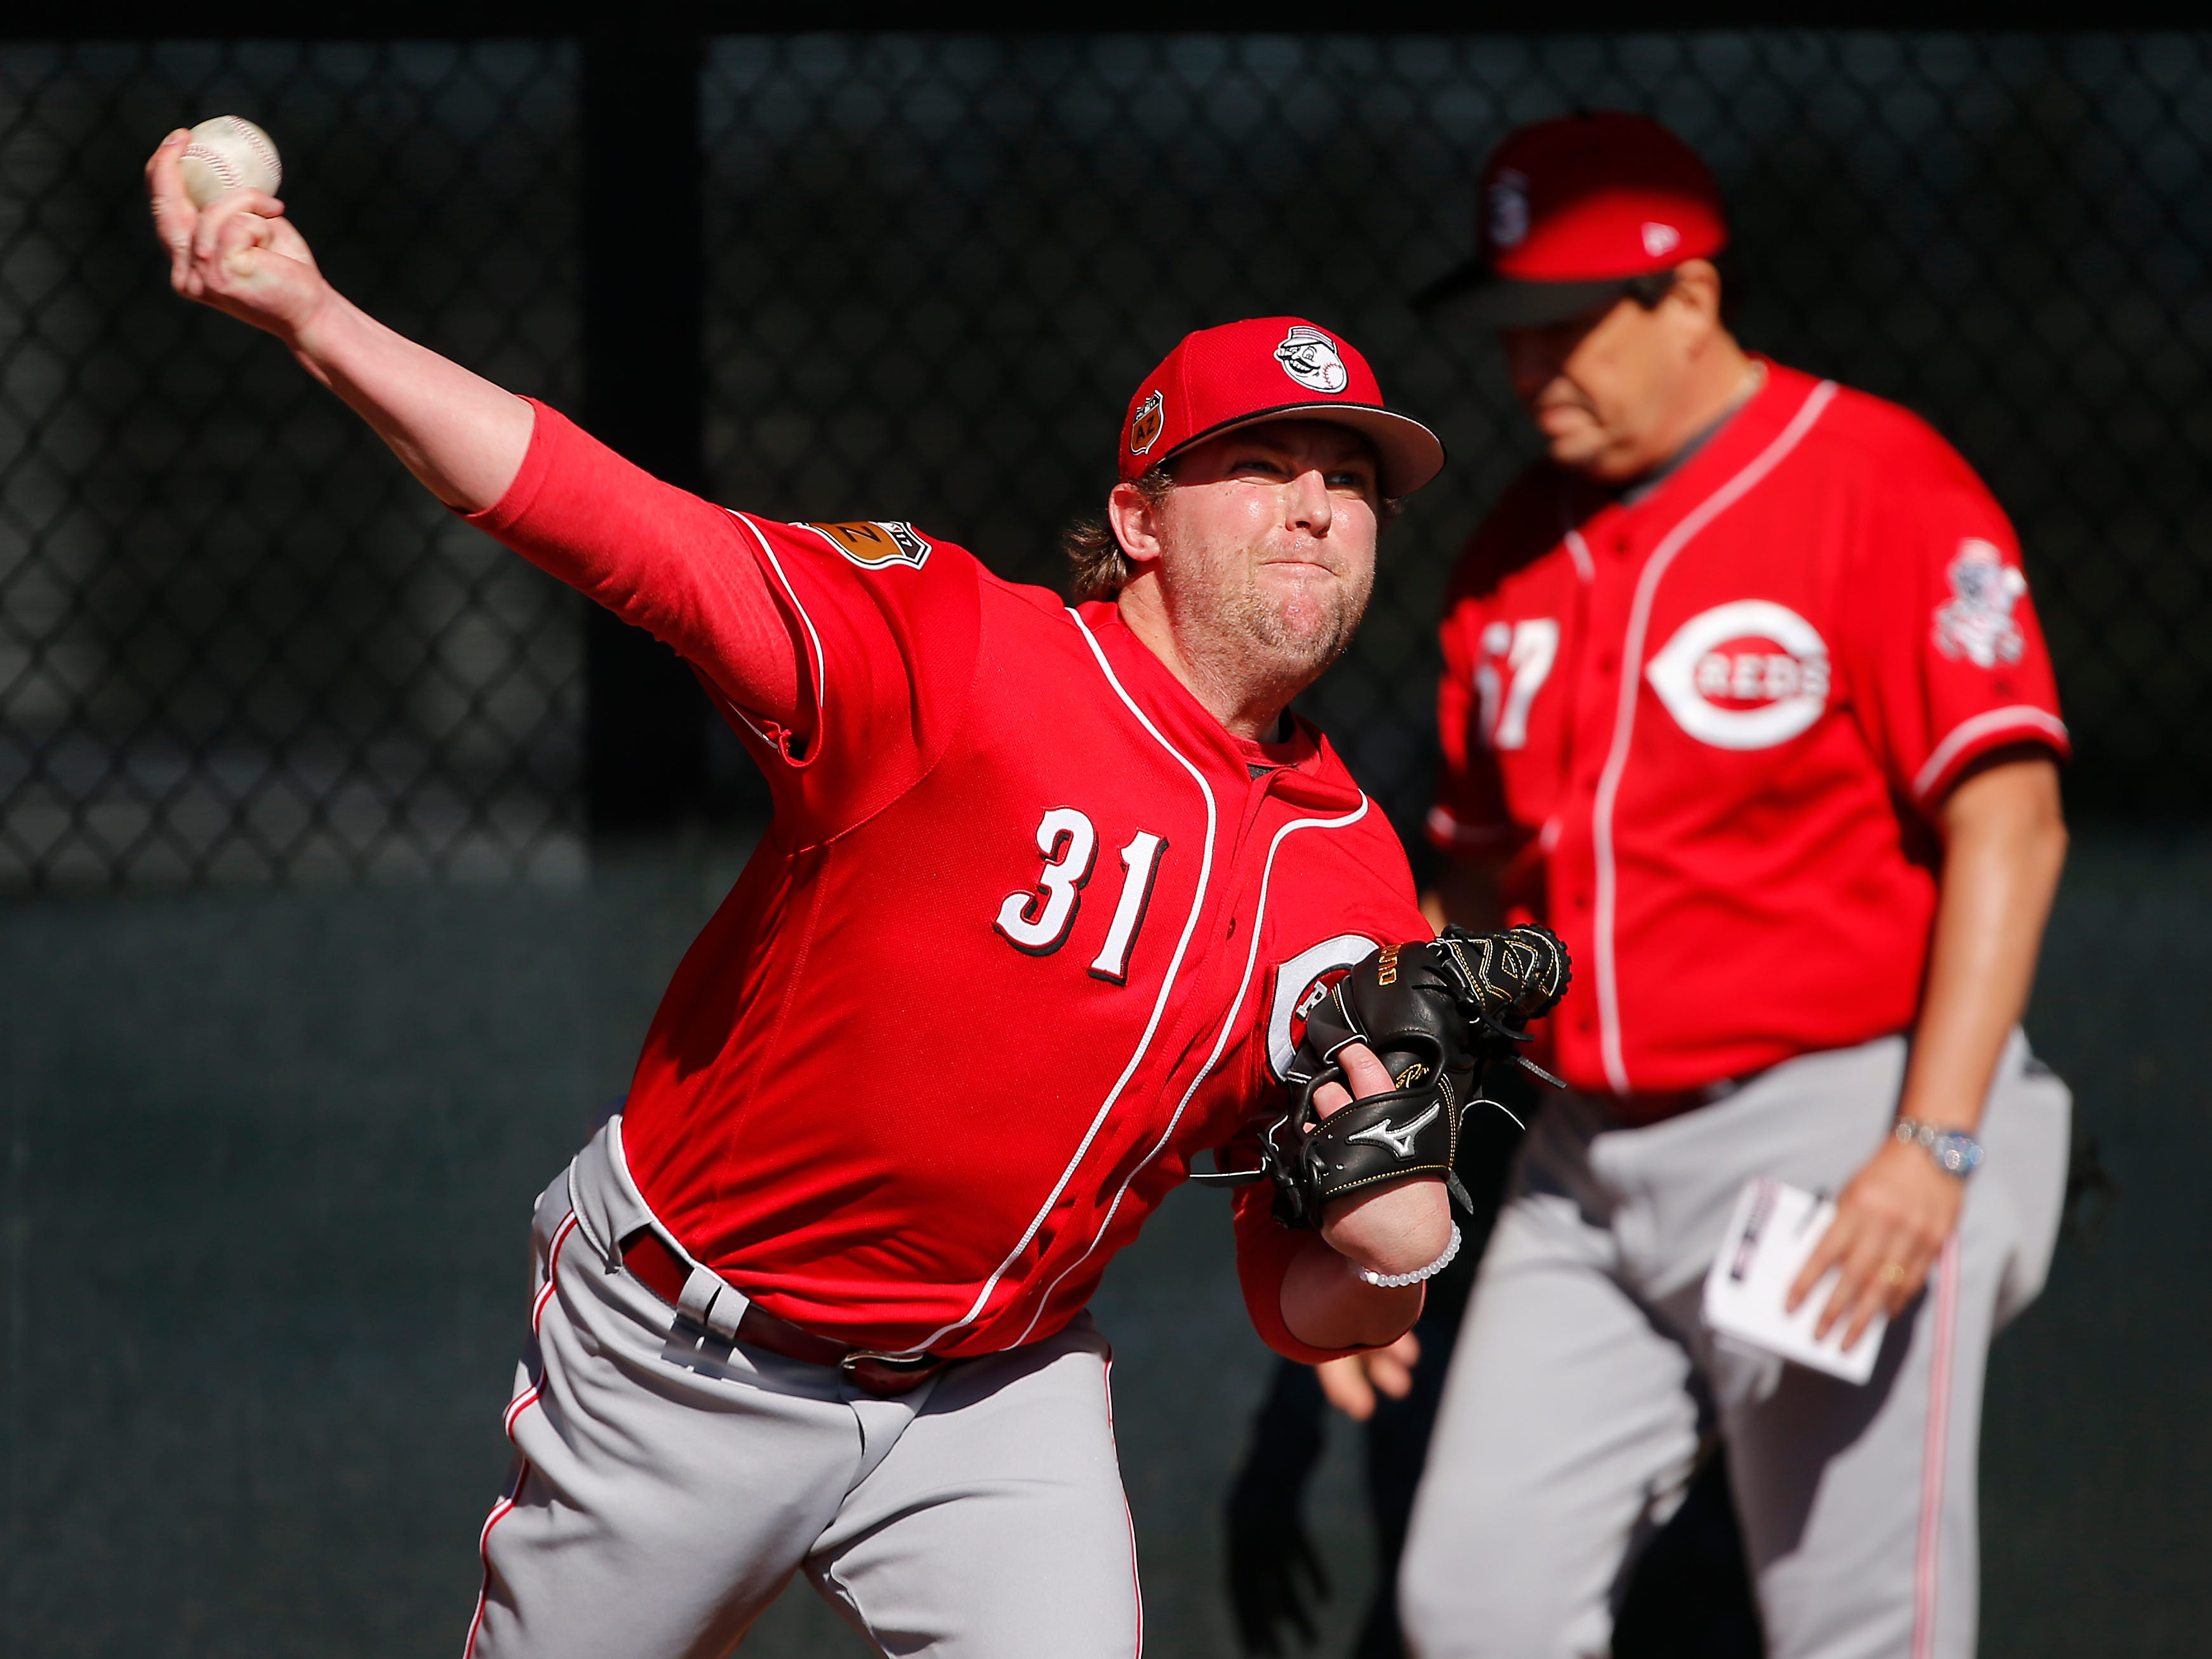 Drew Storen not concerned about lower velocity